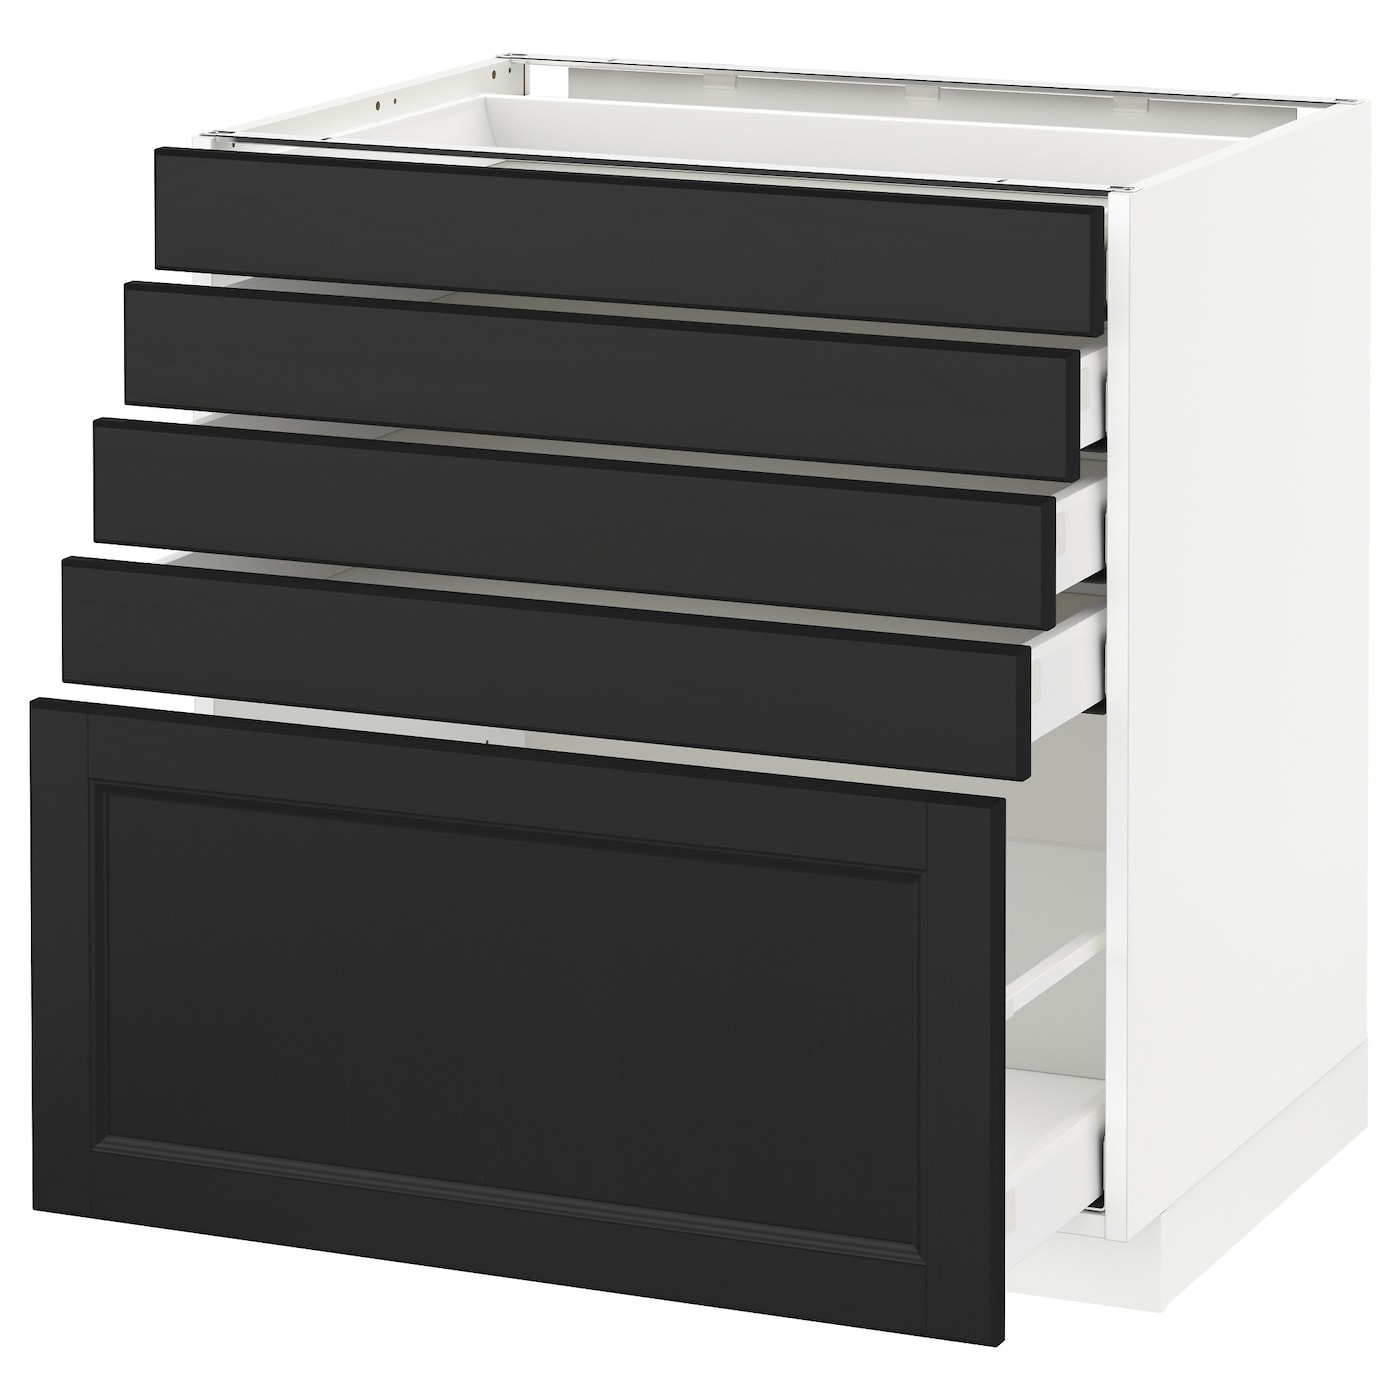 Metod Maximera Base Cabinet With 5 Drawers White Laxarby Black Brown 80x60 Cm Ikea